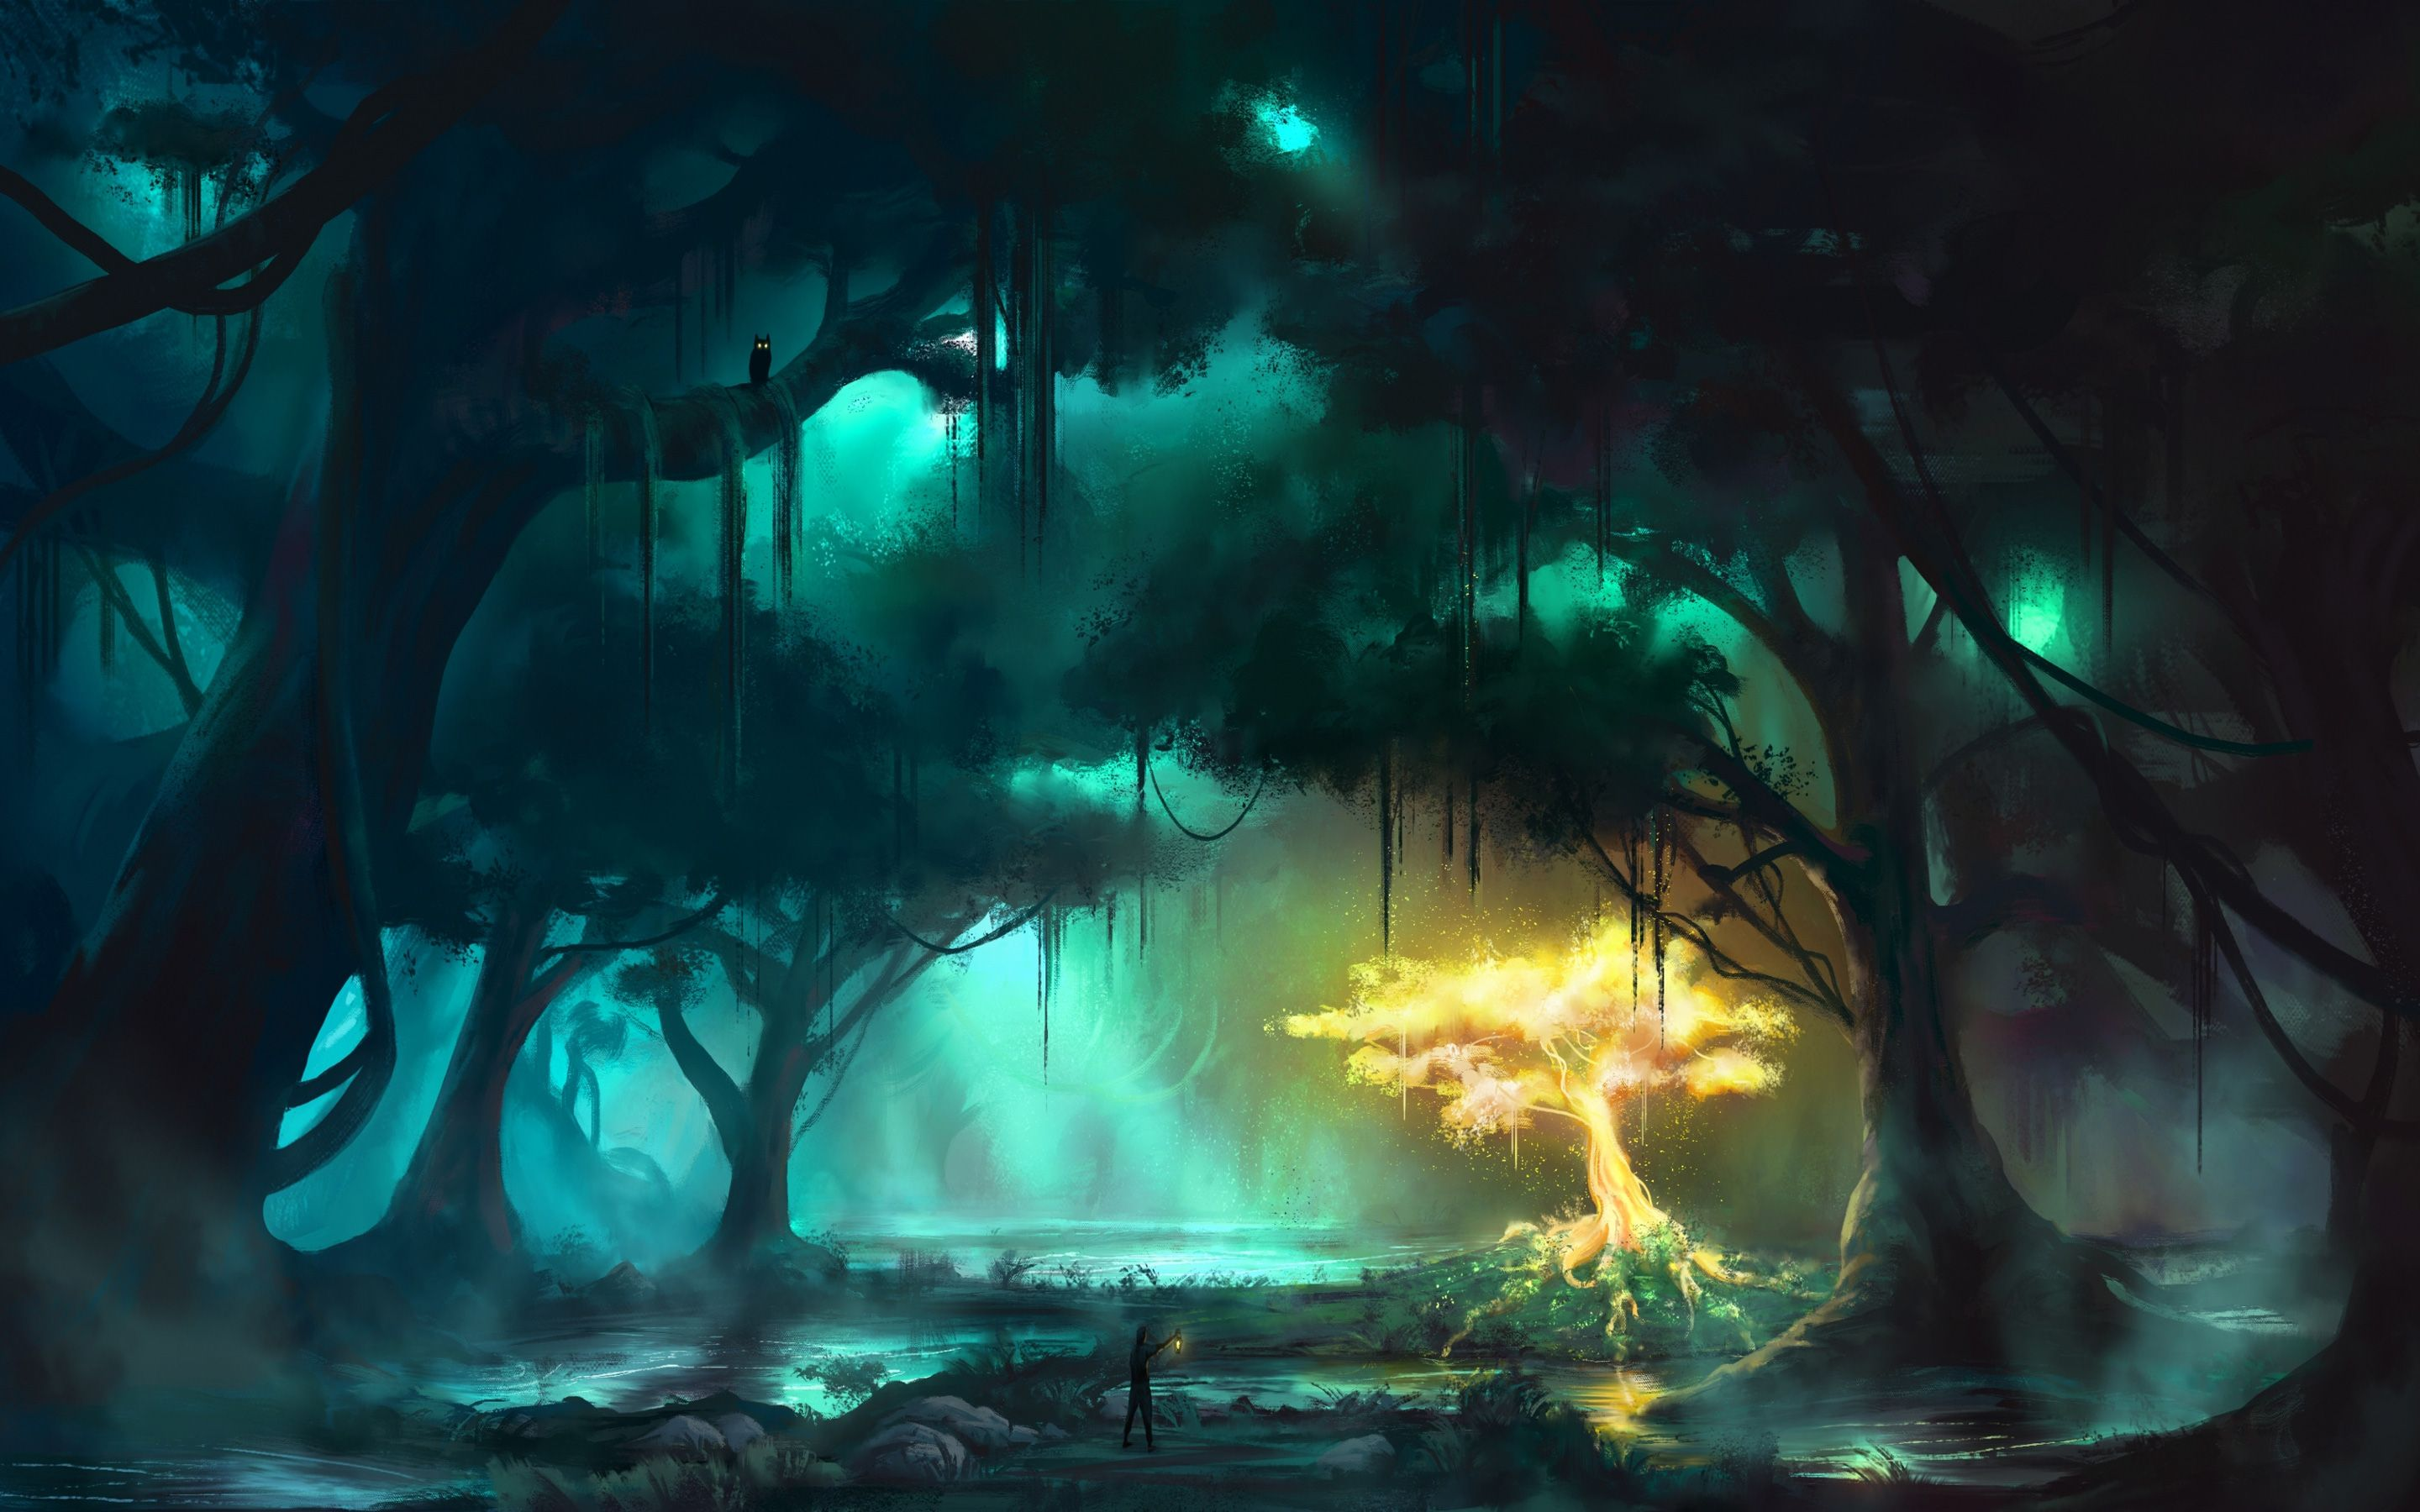 Fantasy Forest Lighting Tree Art Hd Wallpaper 2880x1800 Fantasy Forest Fantasy Landscape Environment Concept Art